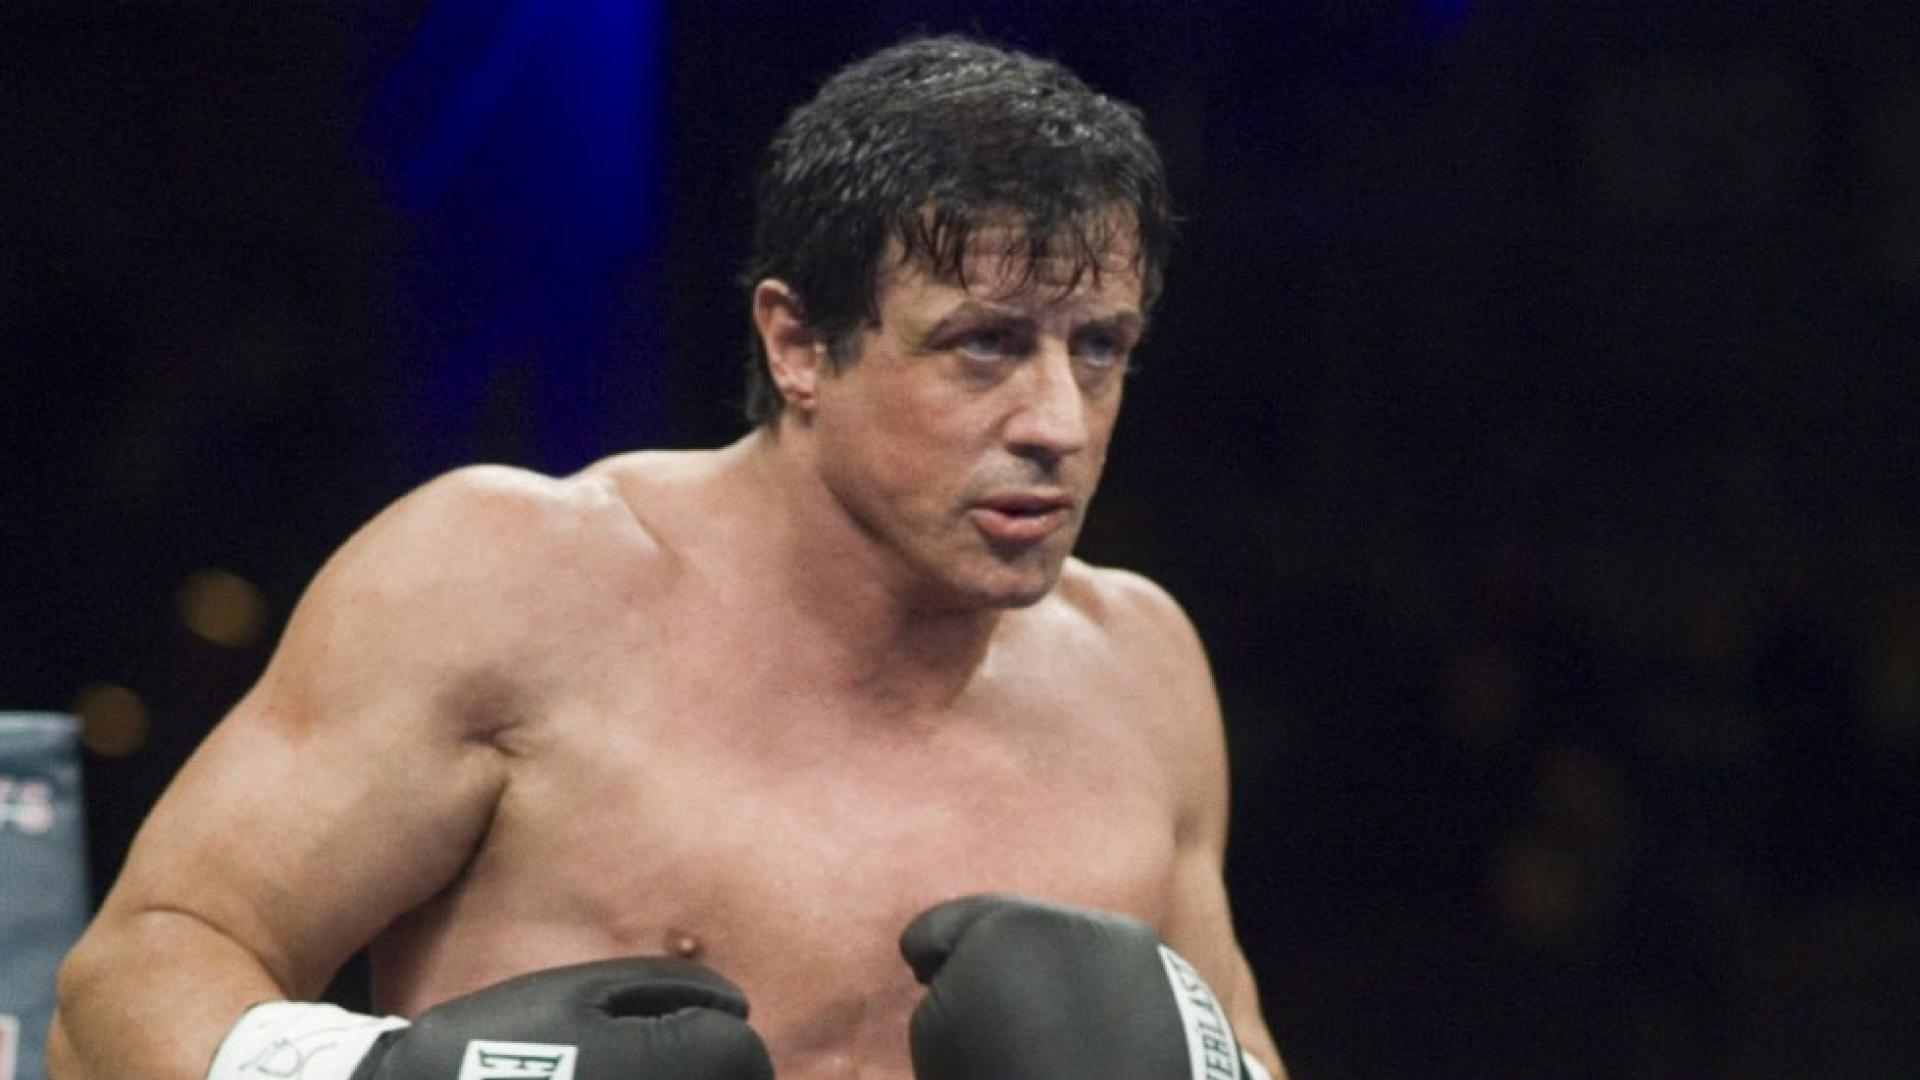 rocky balboa stallone movies HD Wallpaper wallpaper   14602   HQ 1920x1080